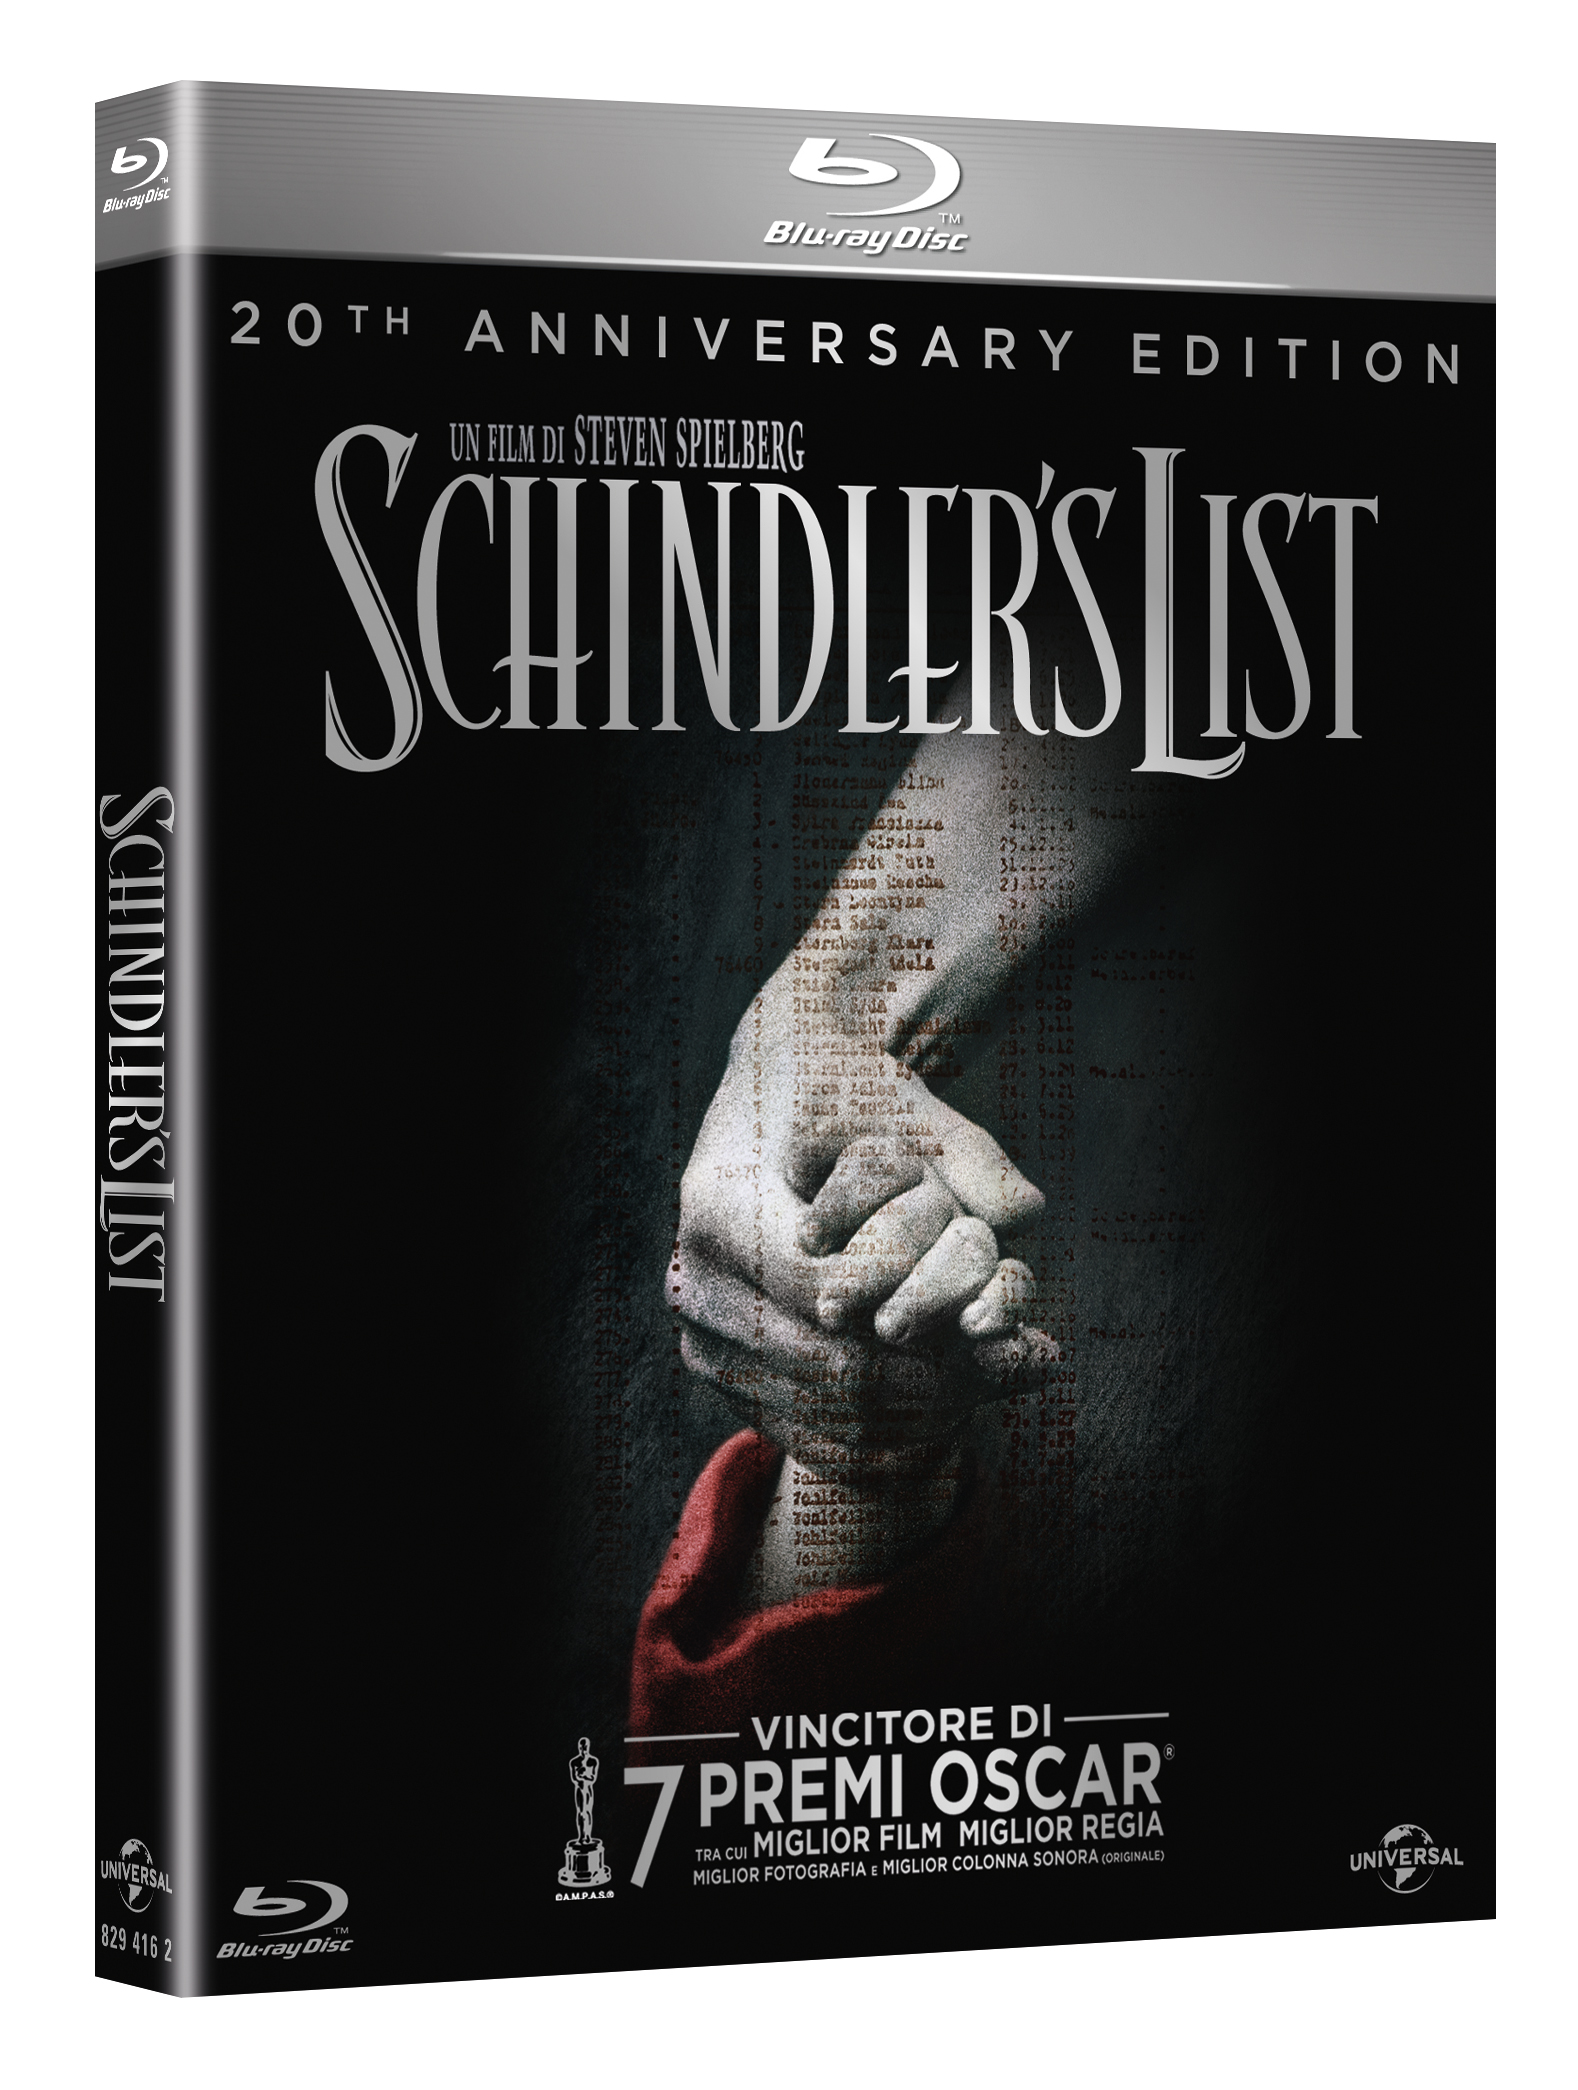 Schindler's list blu-ray